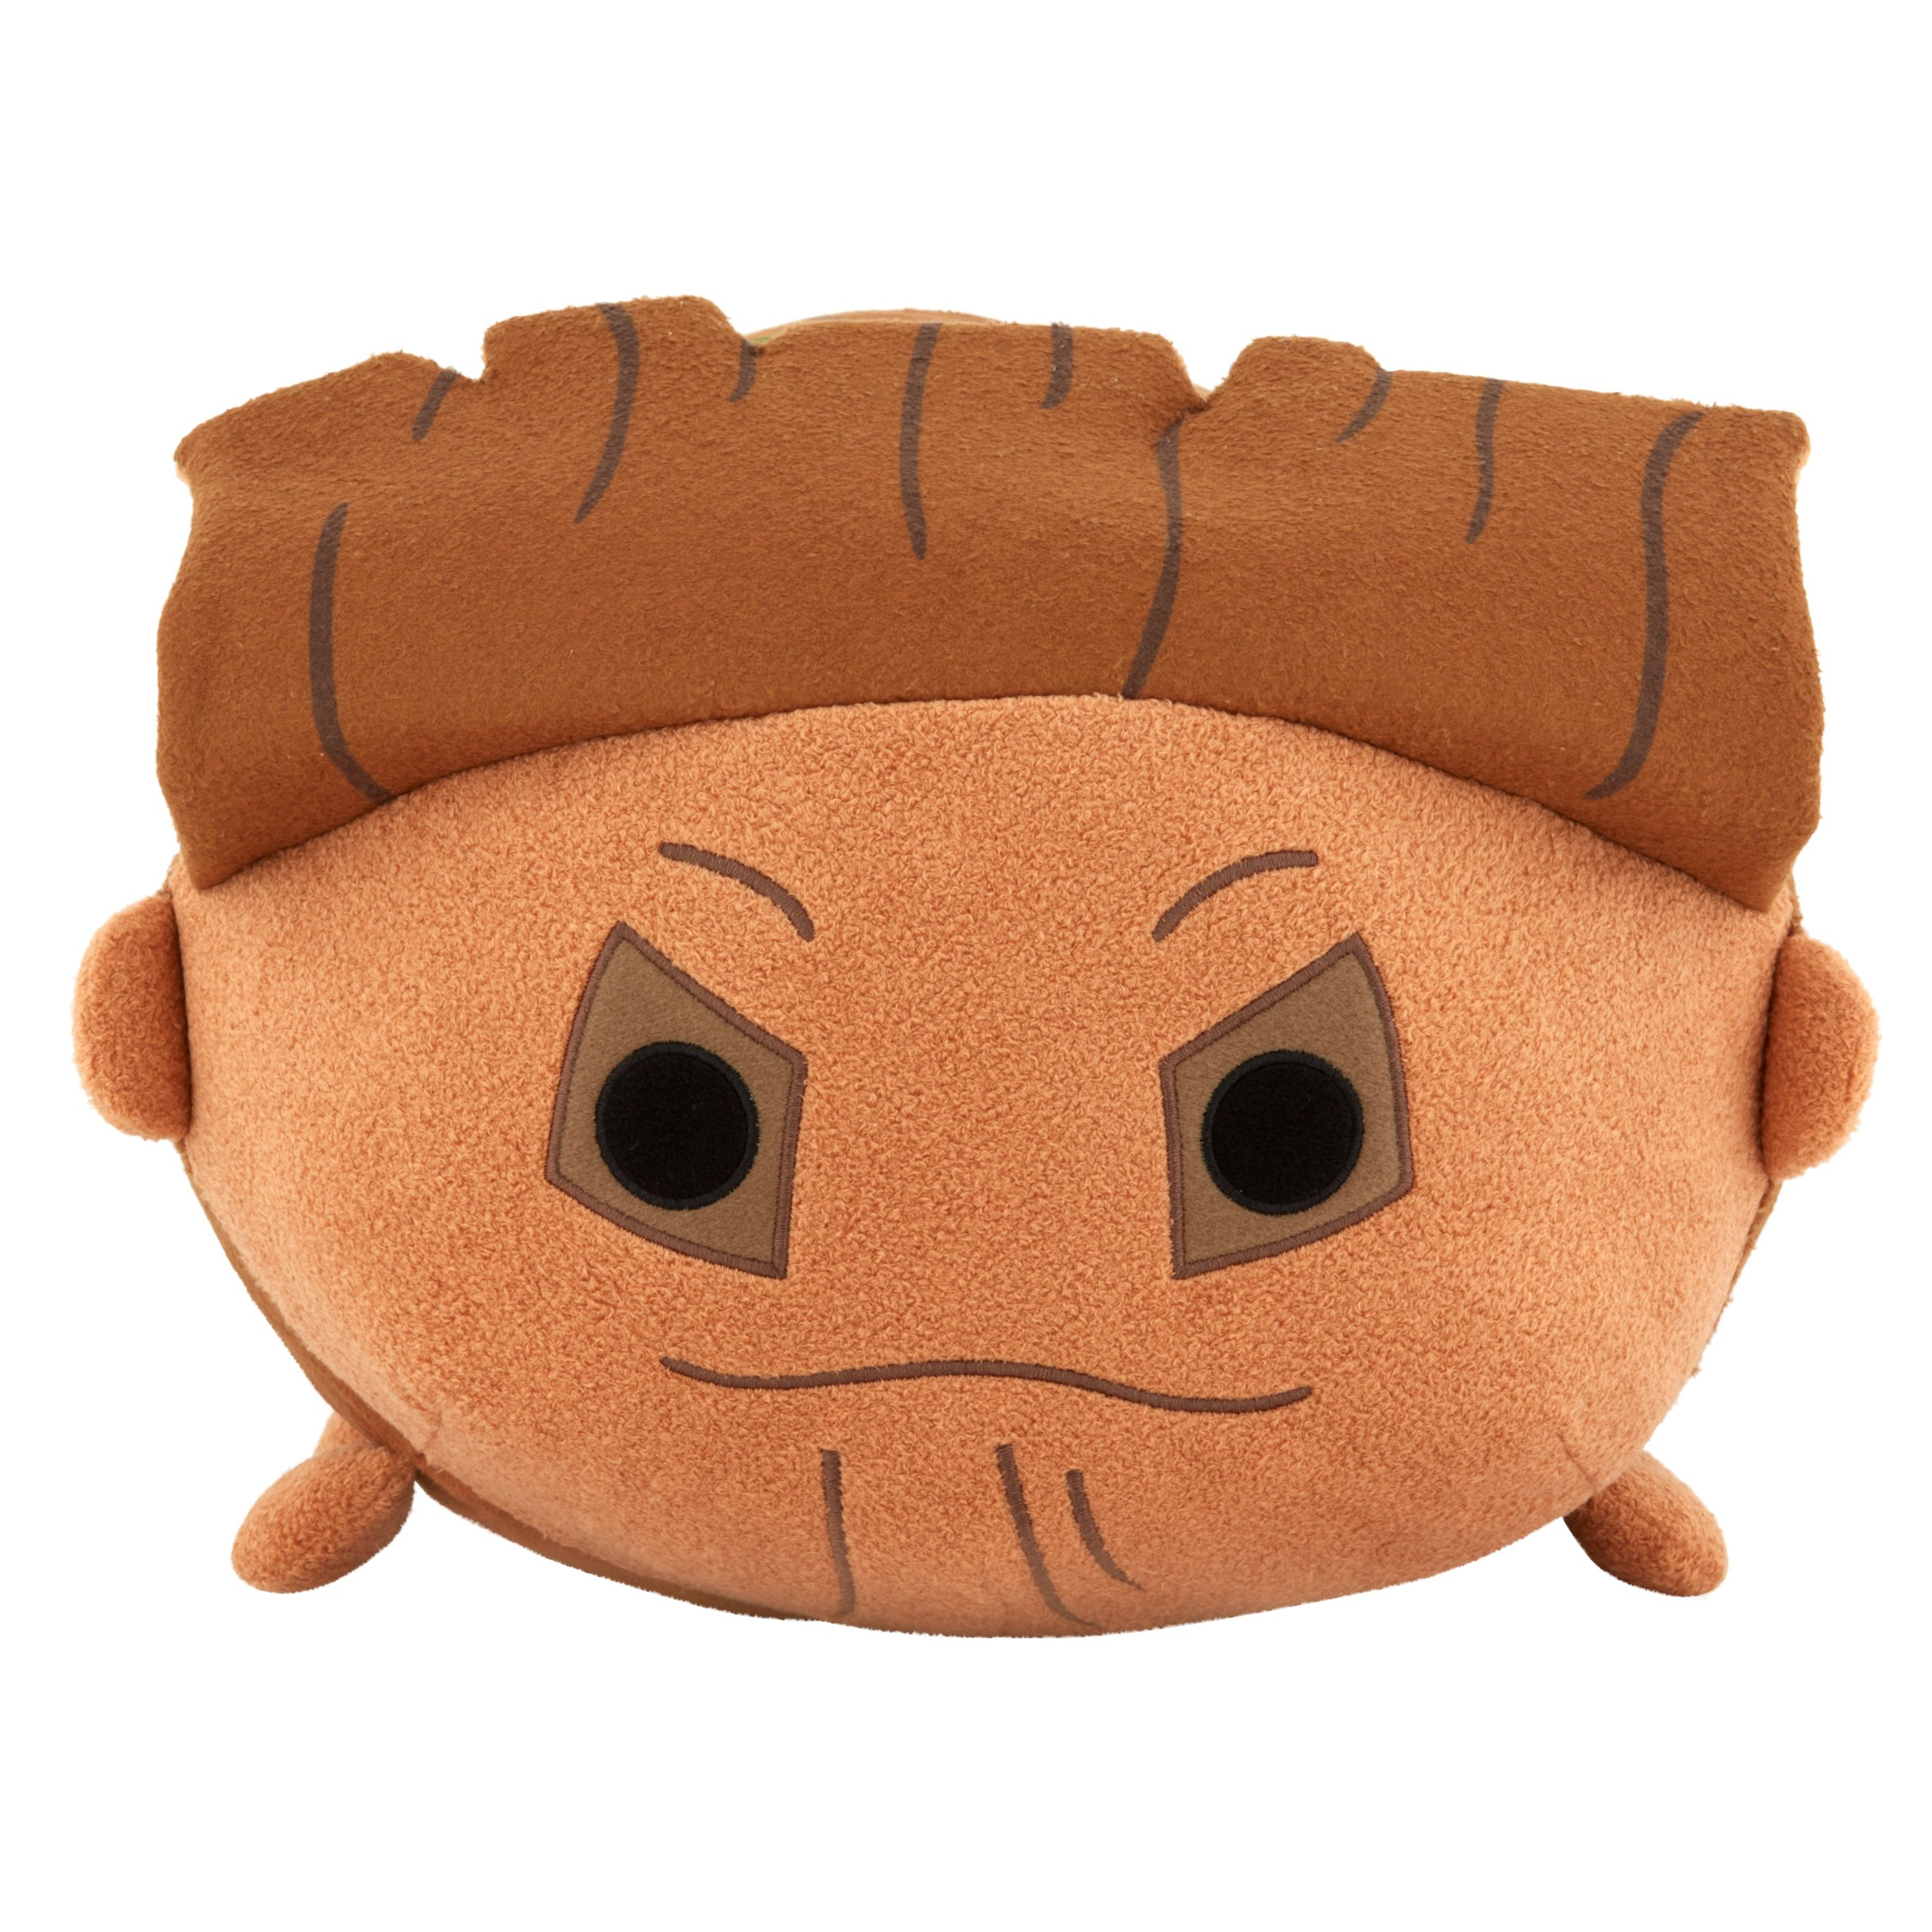 "Disney Tsum Tsum Guardians of the Galaxy Groot 20"" Plush"